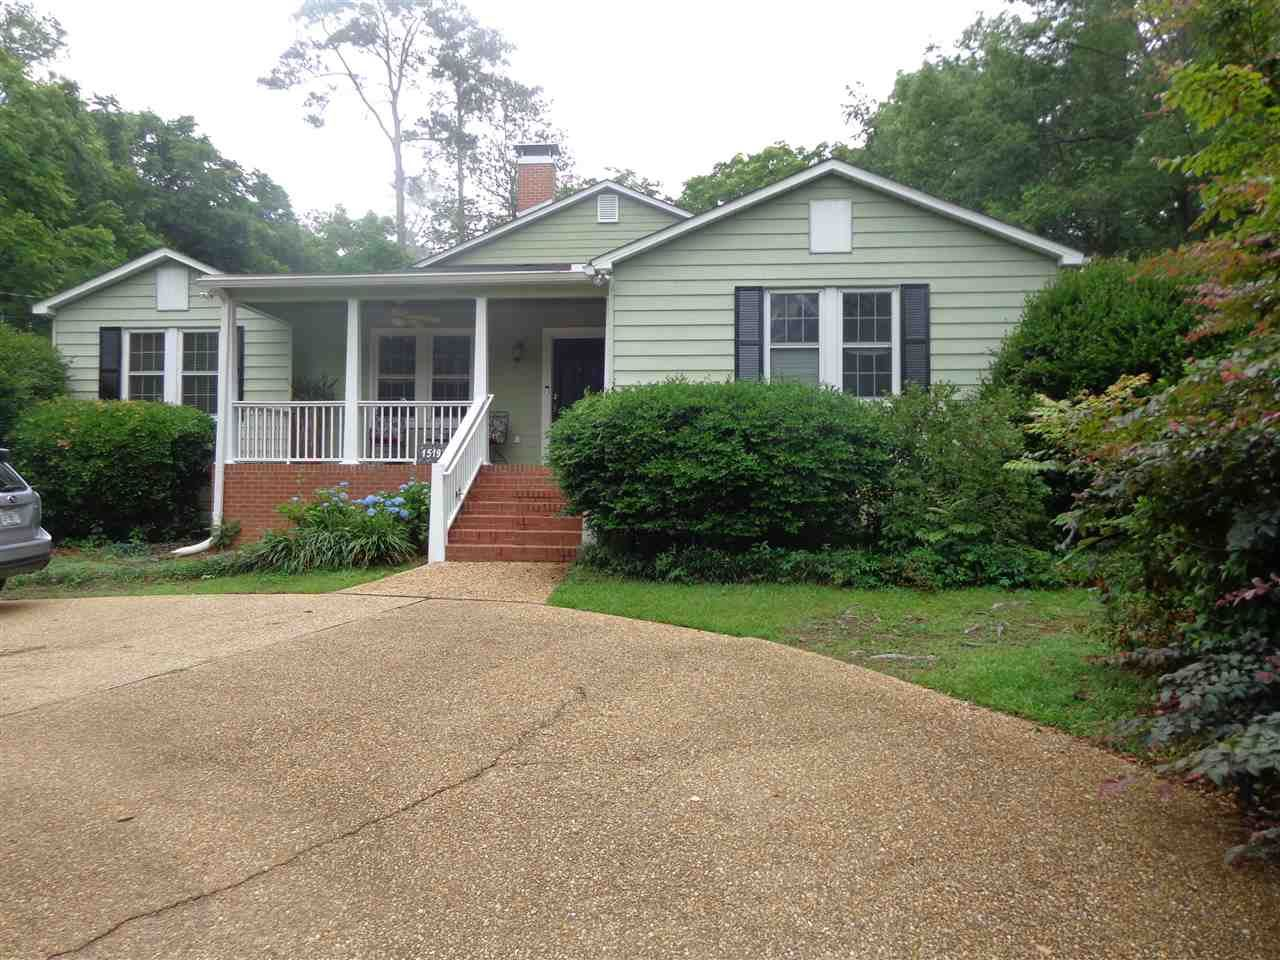 Photo of 1519 Marion Avenue, TALLAHASSEE, FL 32303 (MLS # 333504)